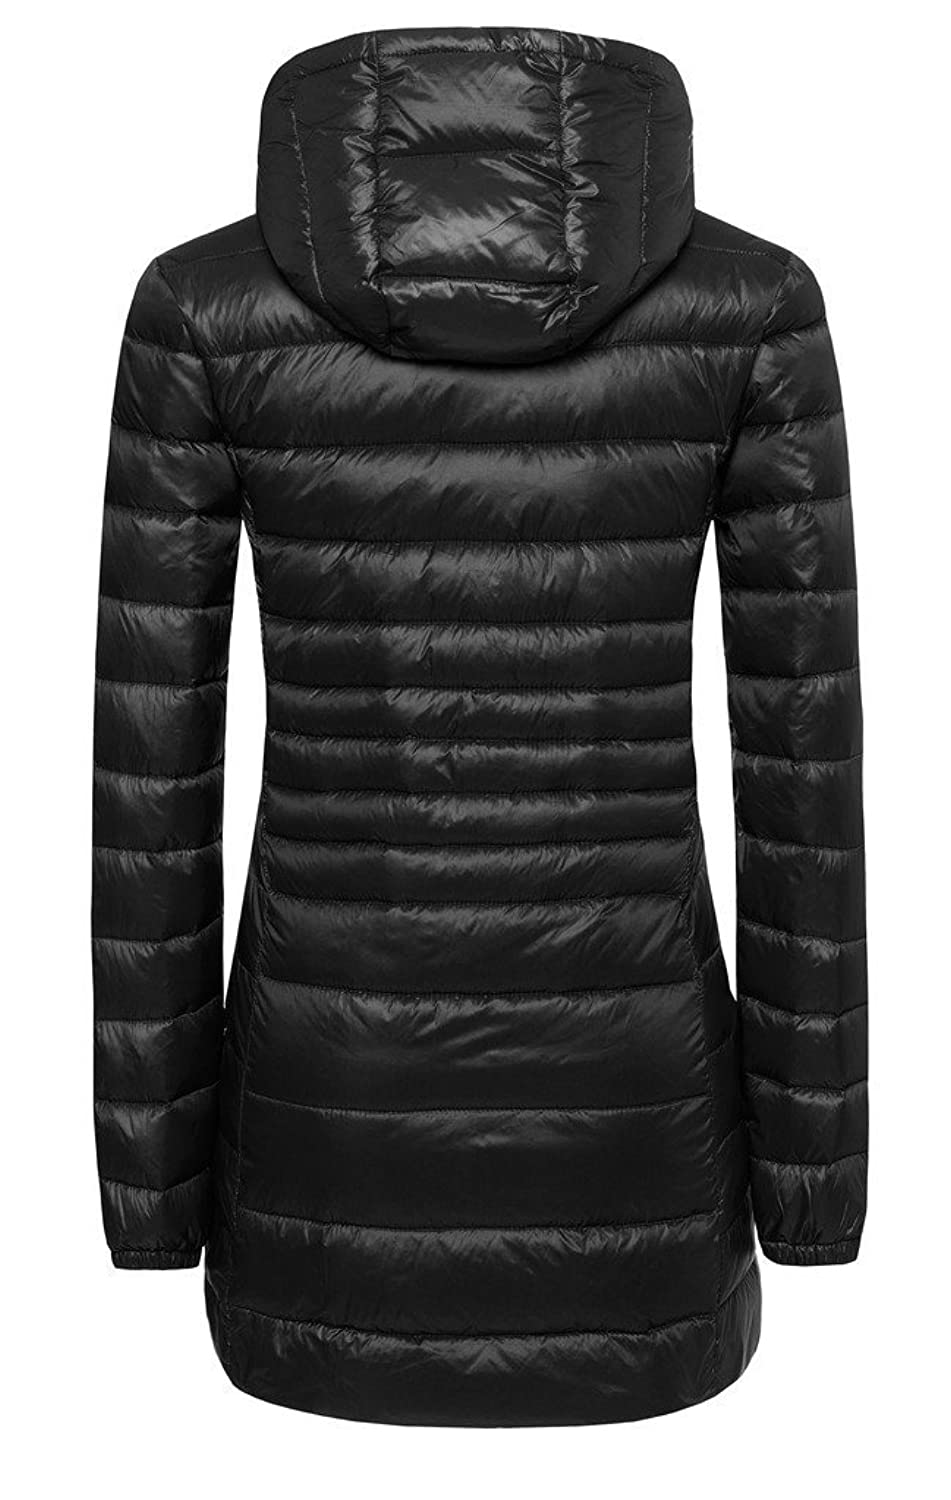 ilishop Women's Winter Outwear Light Coat Hooded Down Jacket at ...